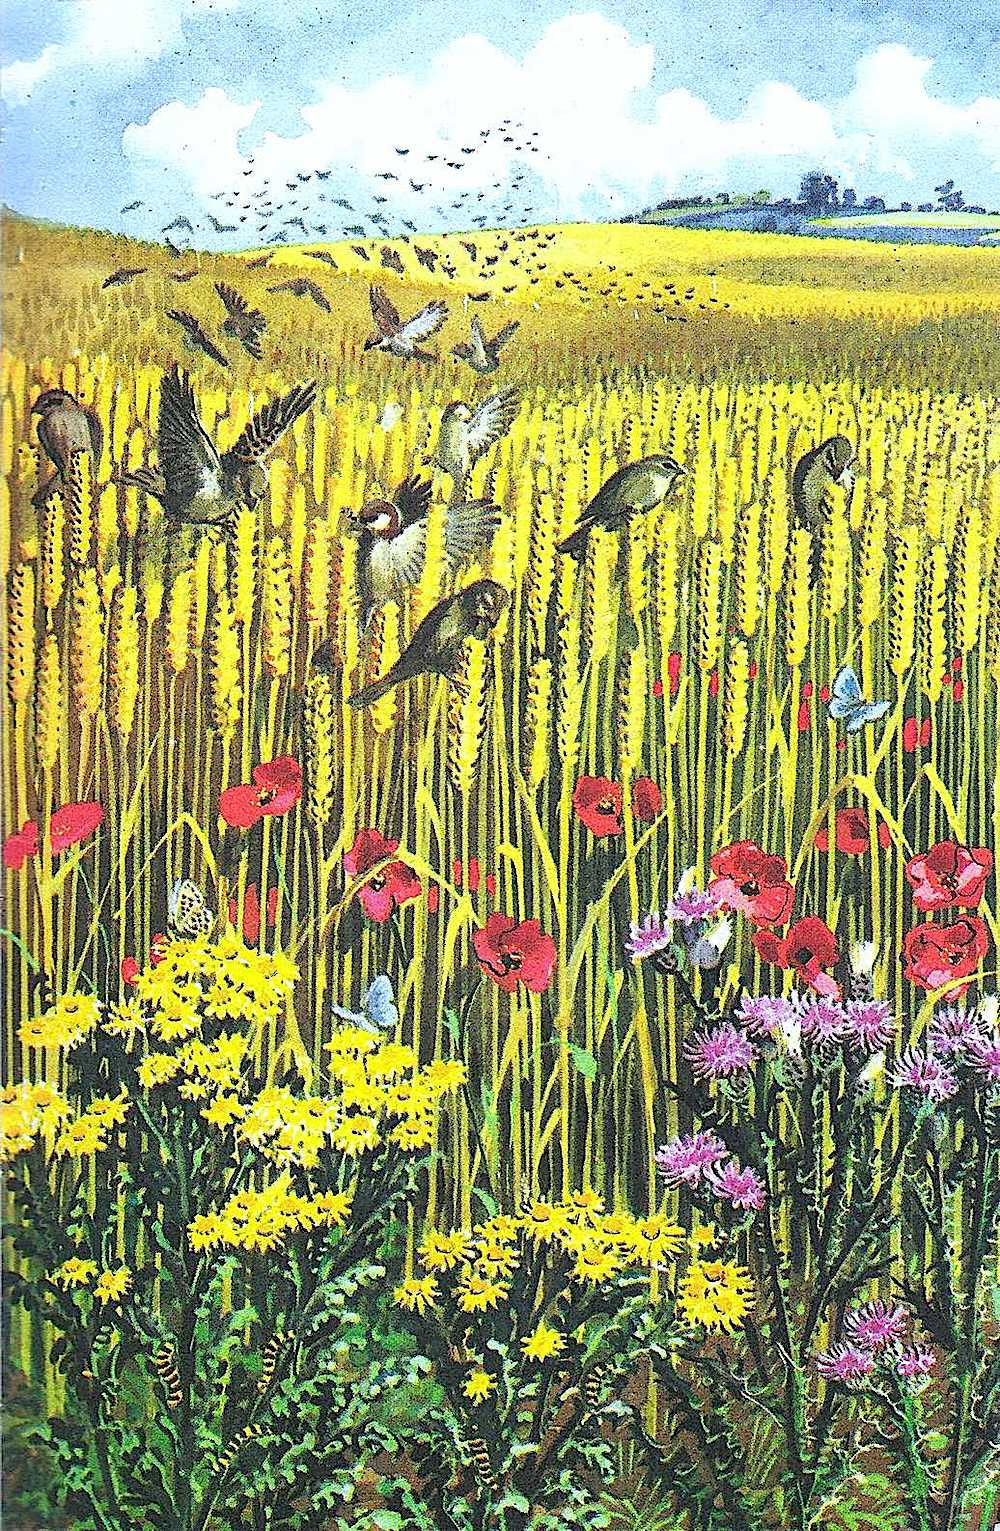 a Charles F. Tunnicliffe illustration of birds in a wheat field